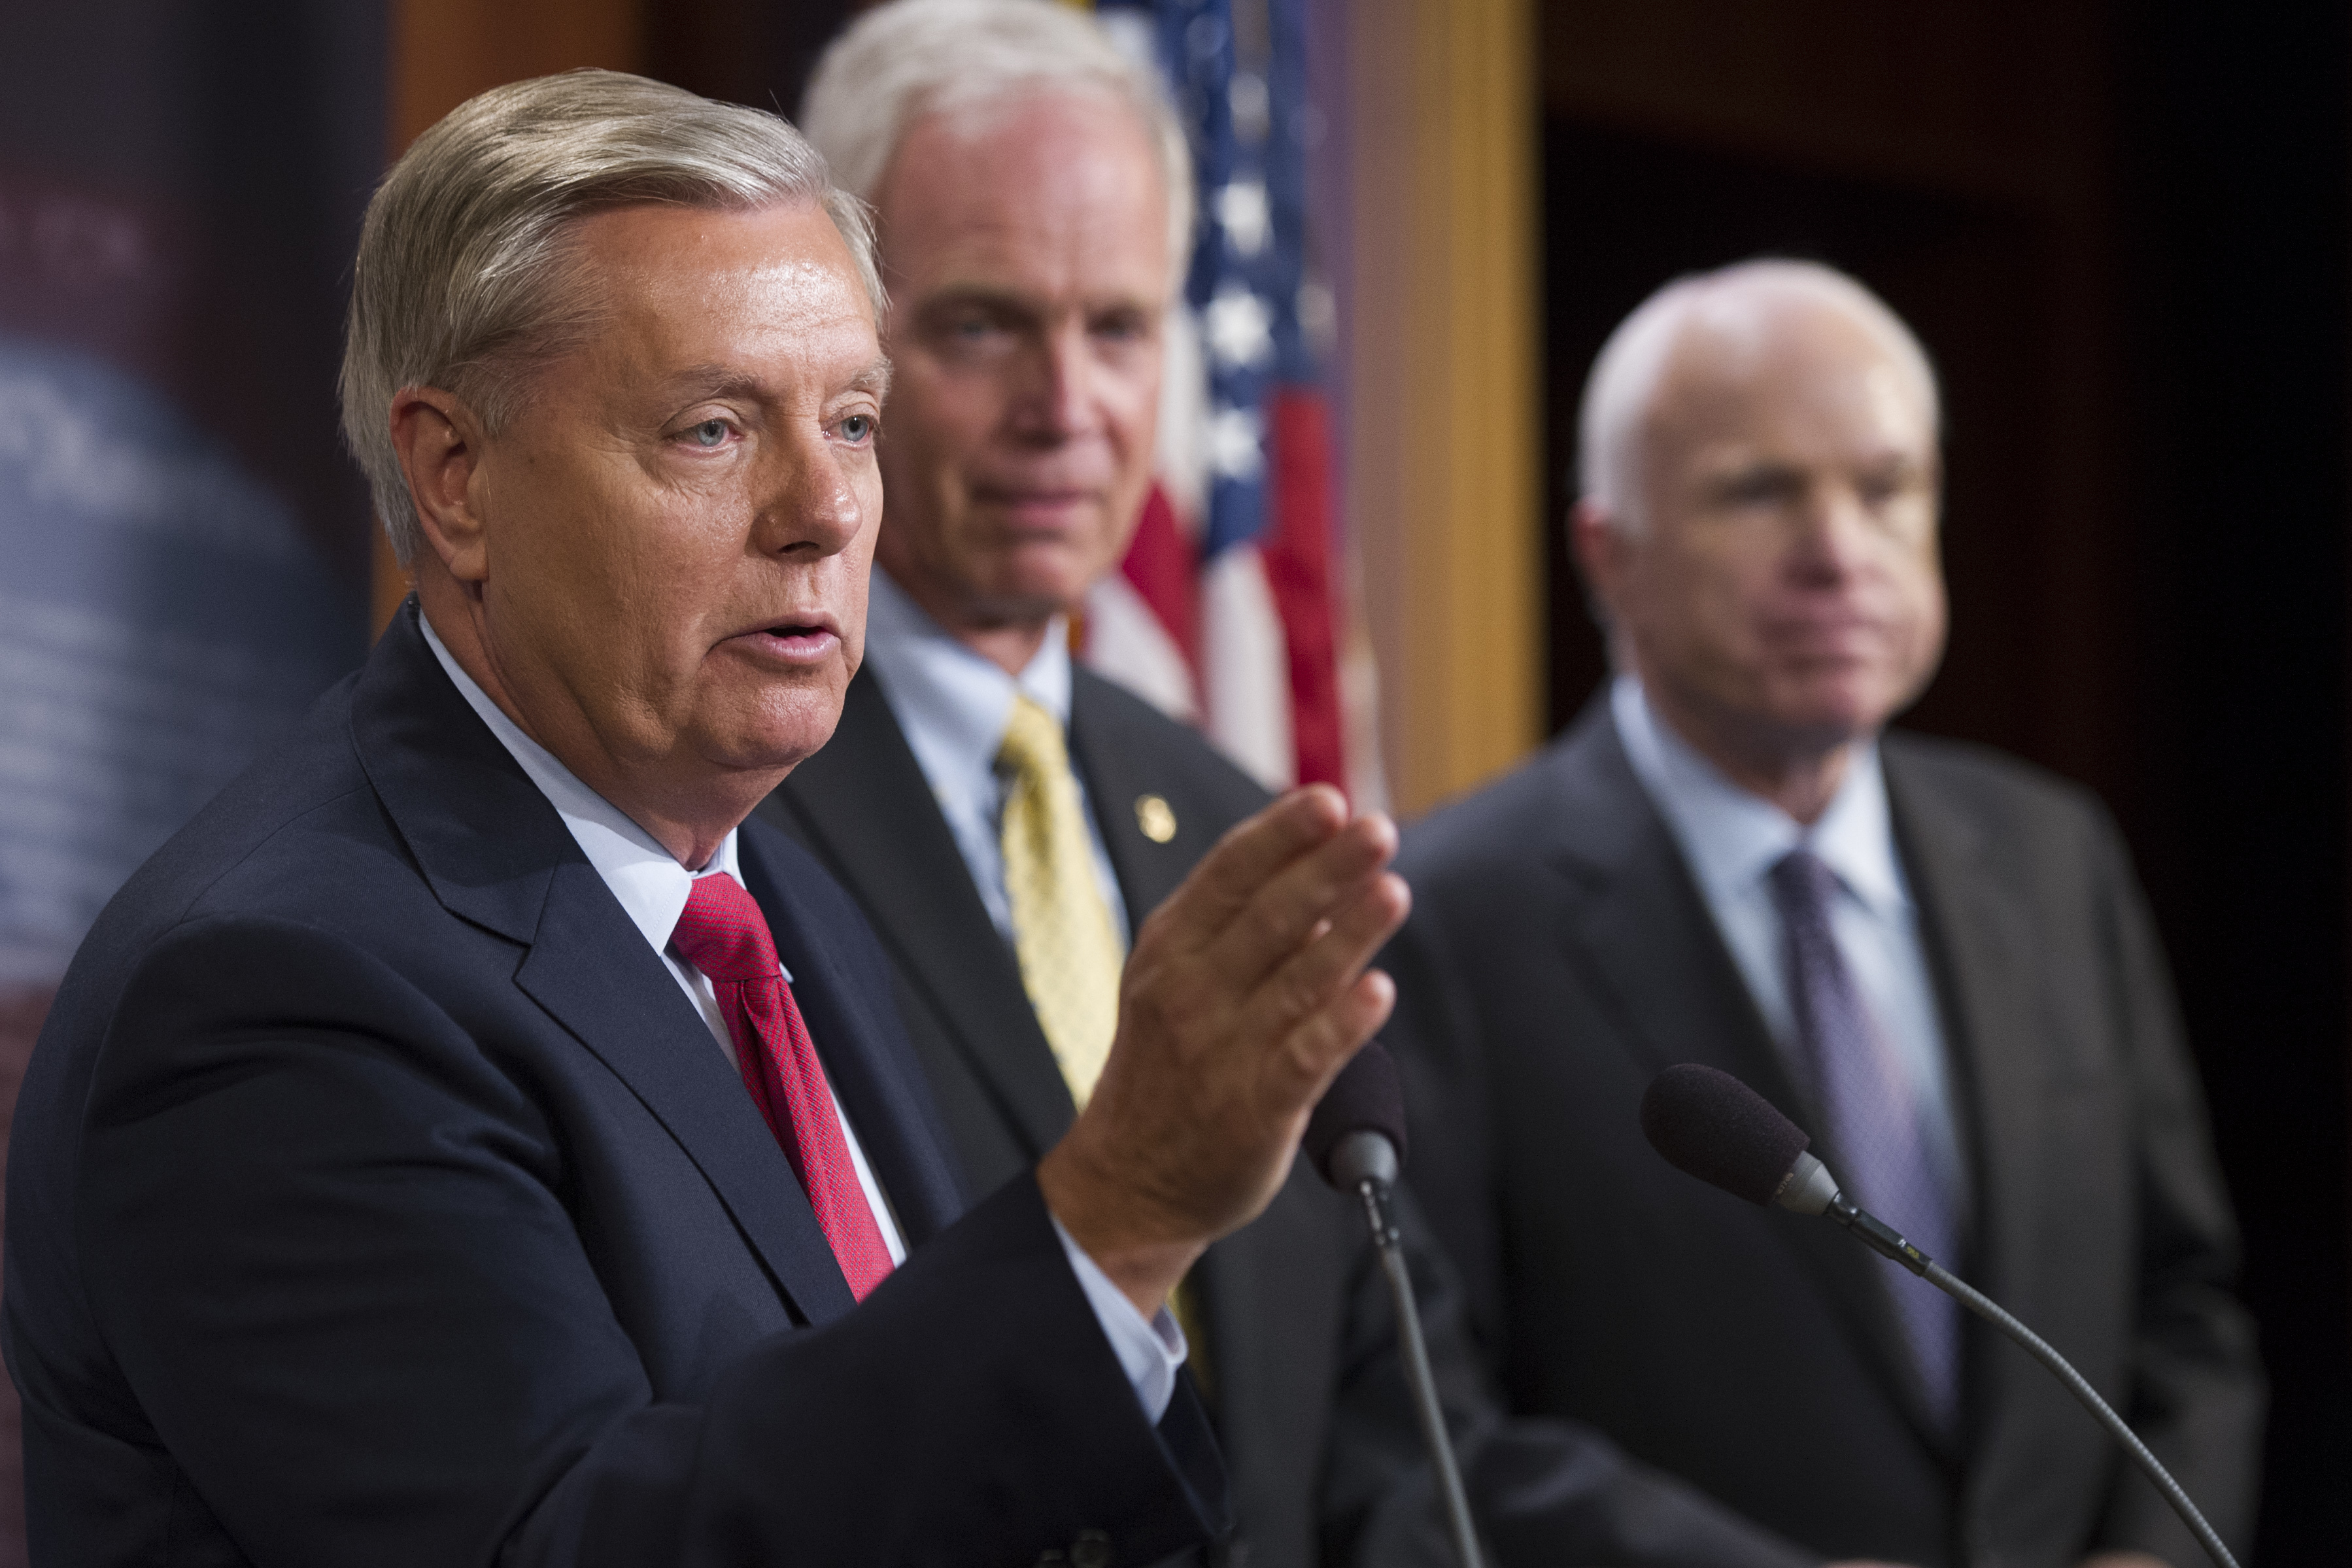 From left, Sen. Lindsey Graham, R-S.C., Sen. Ron Johnson, R-Wis., and Sen. John McCain, R-Ariz., speak to reporters at the Capitol. McCain joined two other Republican senators to defeat a measure to partly repeal the Affordable Care Act.